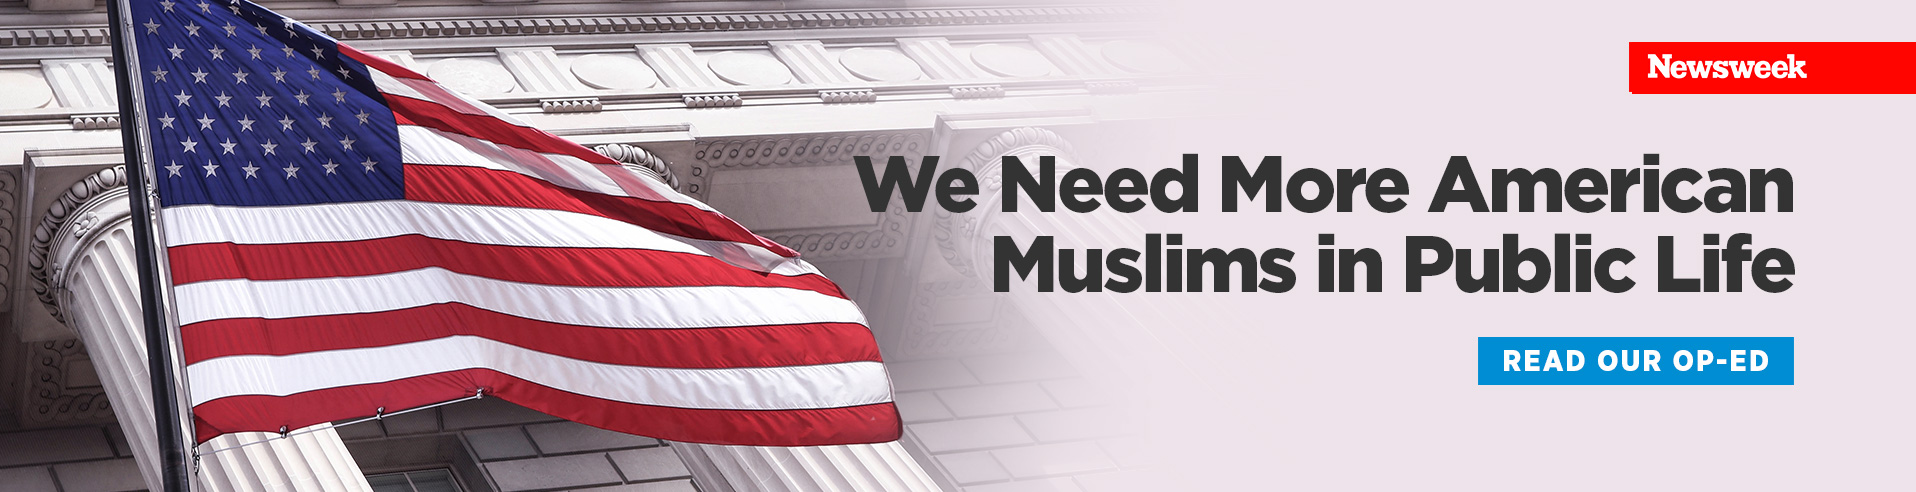 We Need More American Muslims in Public Life - Our Op-Ed for Newsweek